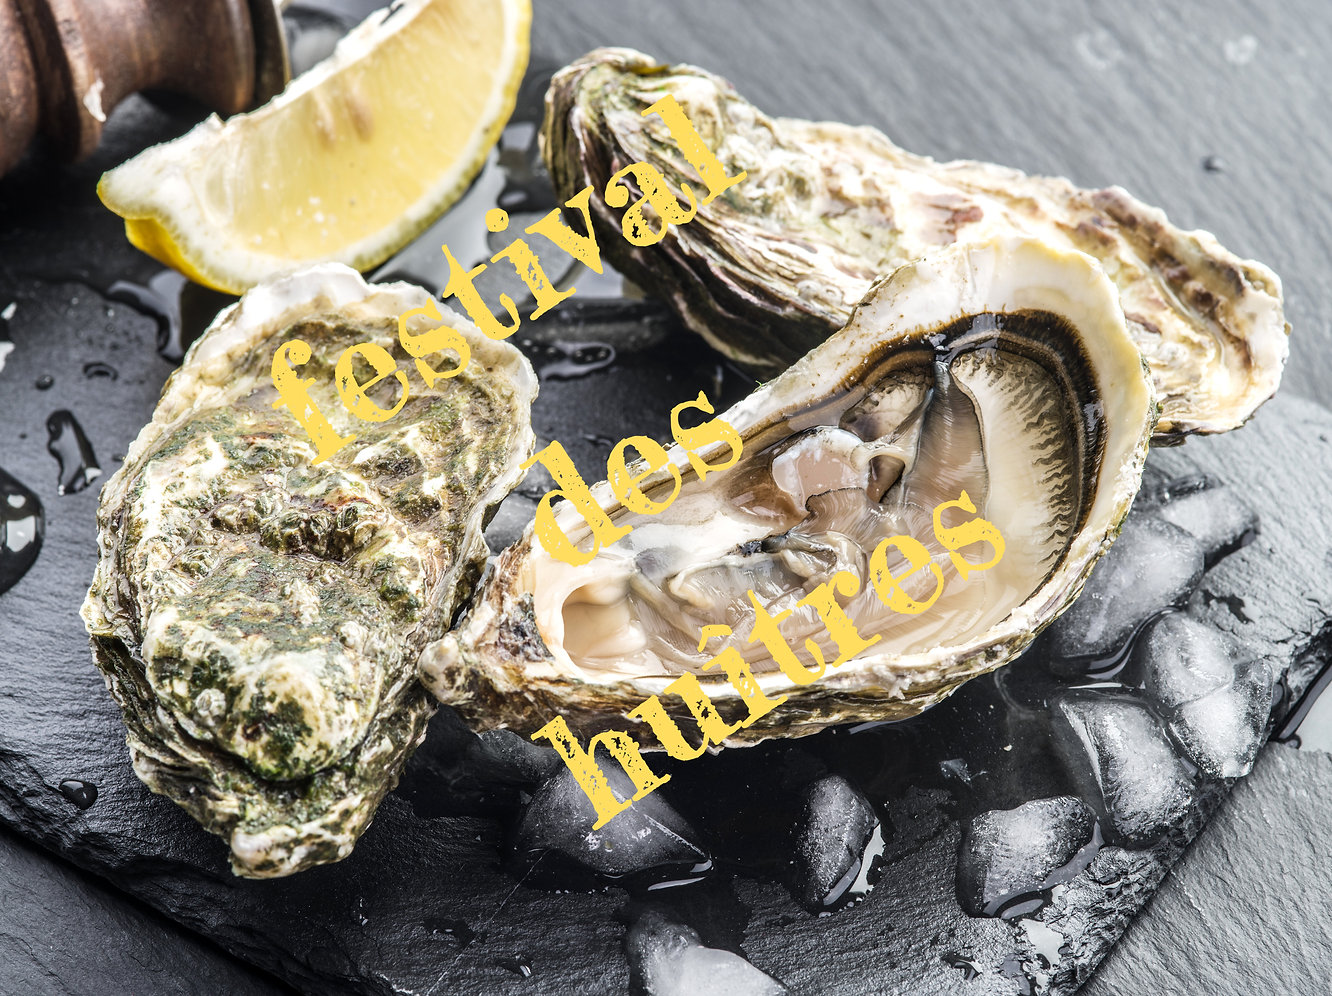 Raw%20oysters%20on%20the%20graphite%20bo